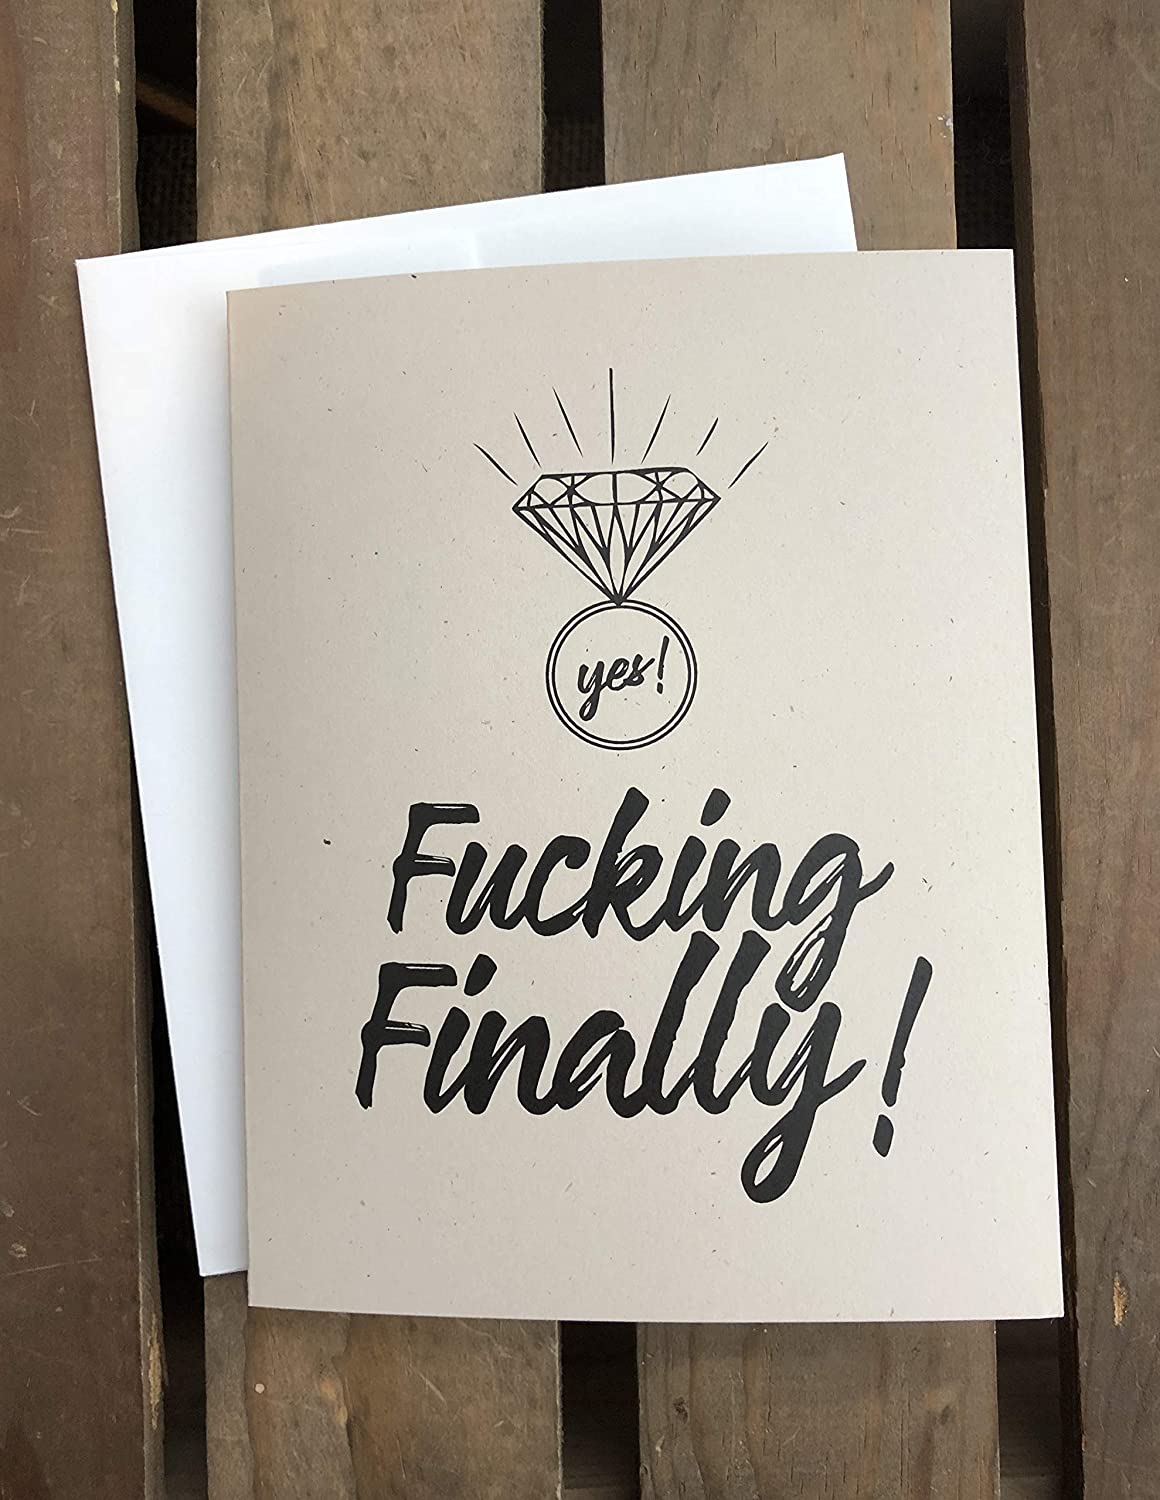 Fucking Finally Engagement Wedding Card - Ring Bling - Note Card - FUNNY - Recycled - Eco Friendly